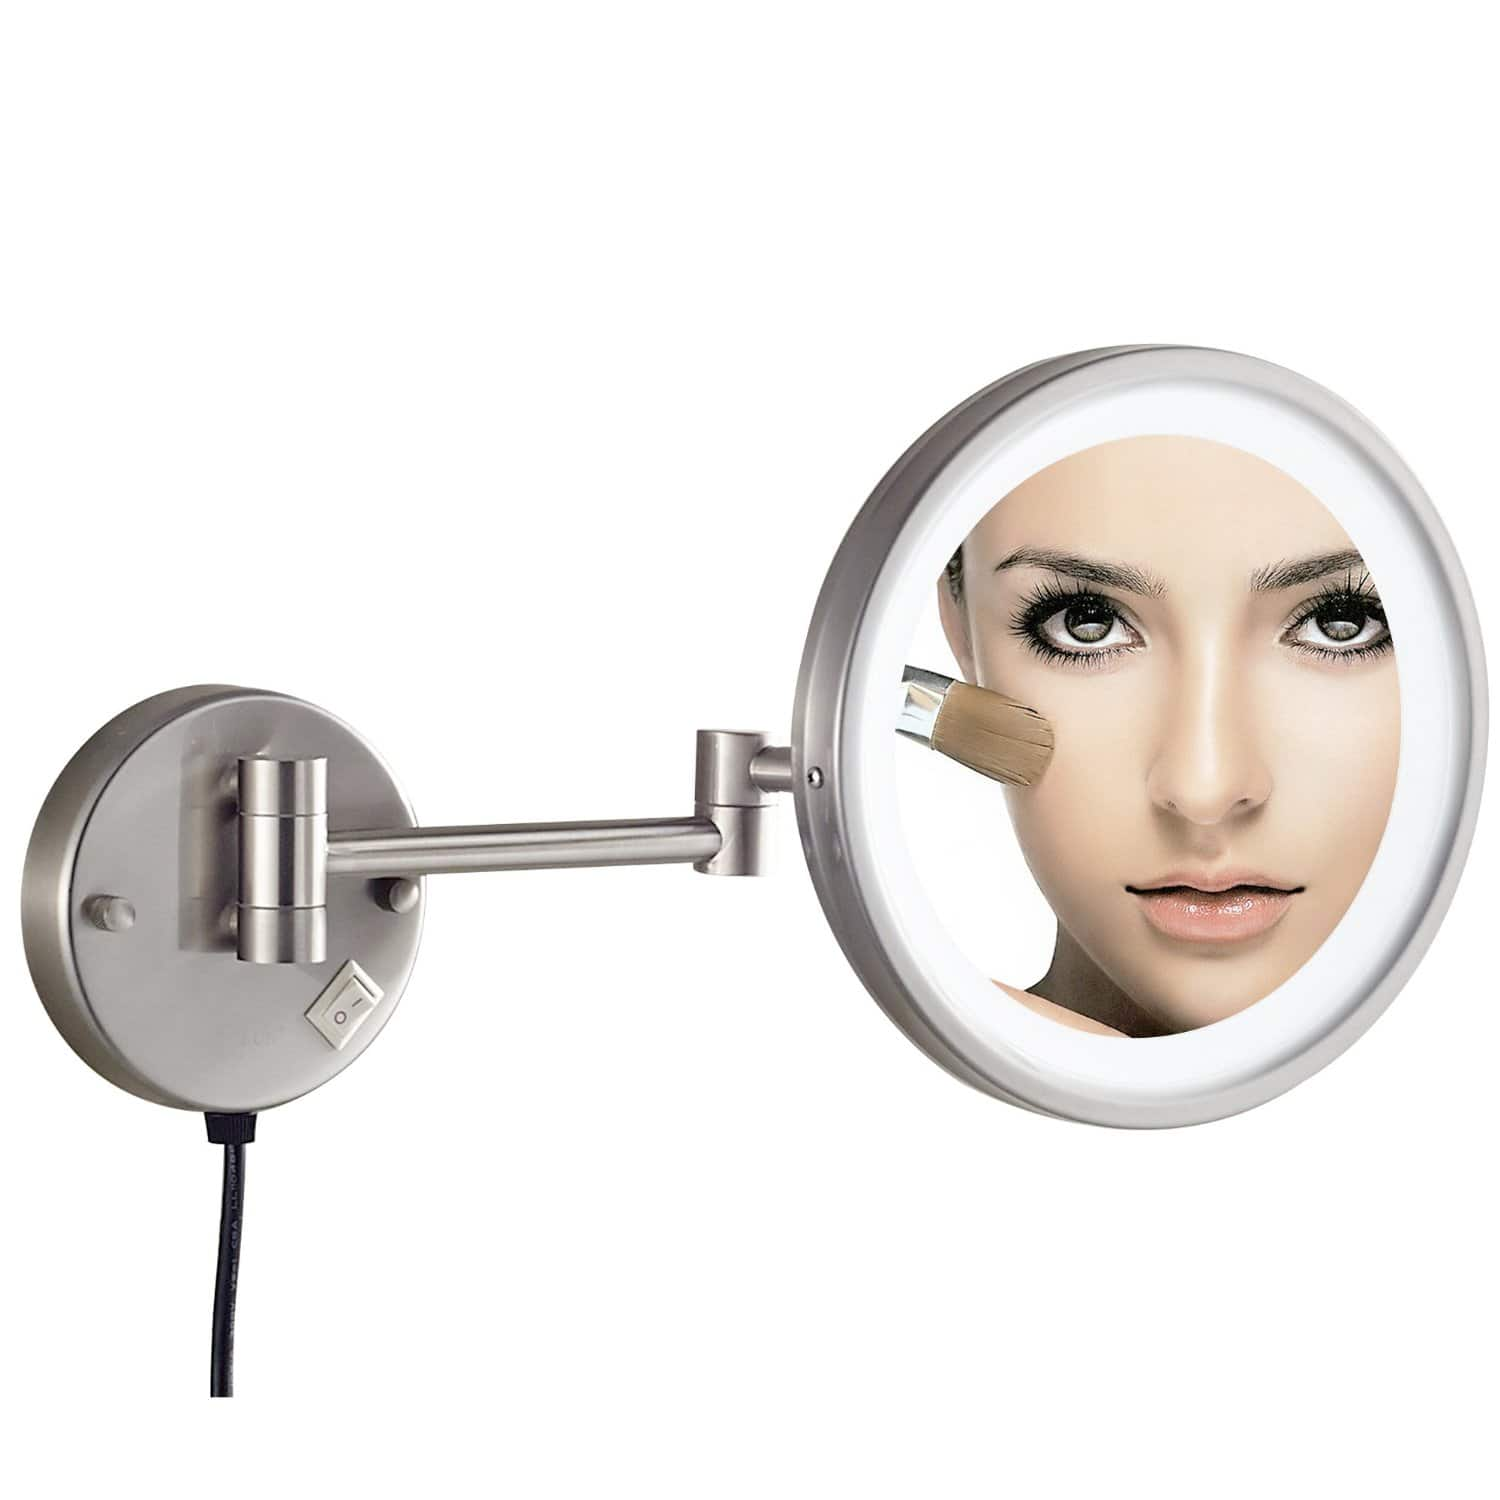 Wall Mounted LED Adjustable 8.5in. Mirror with 7x Magnification - $35.99 AC + FSSS